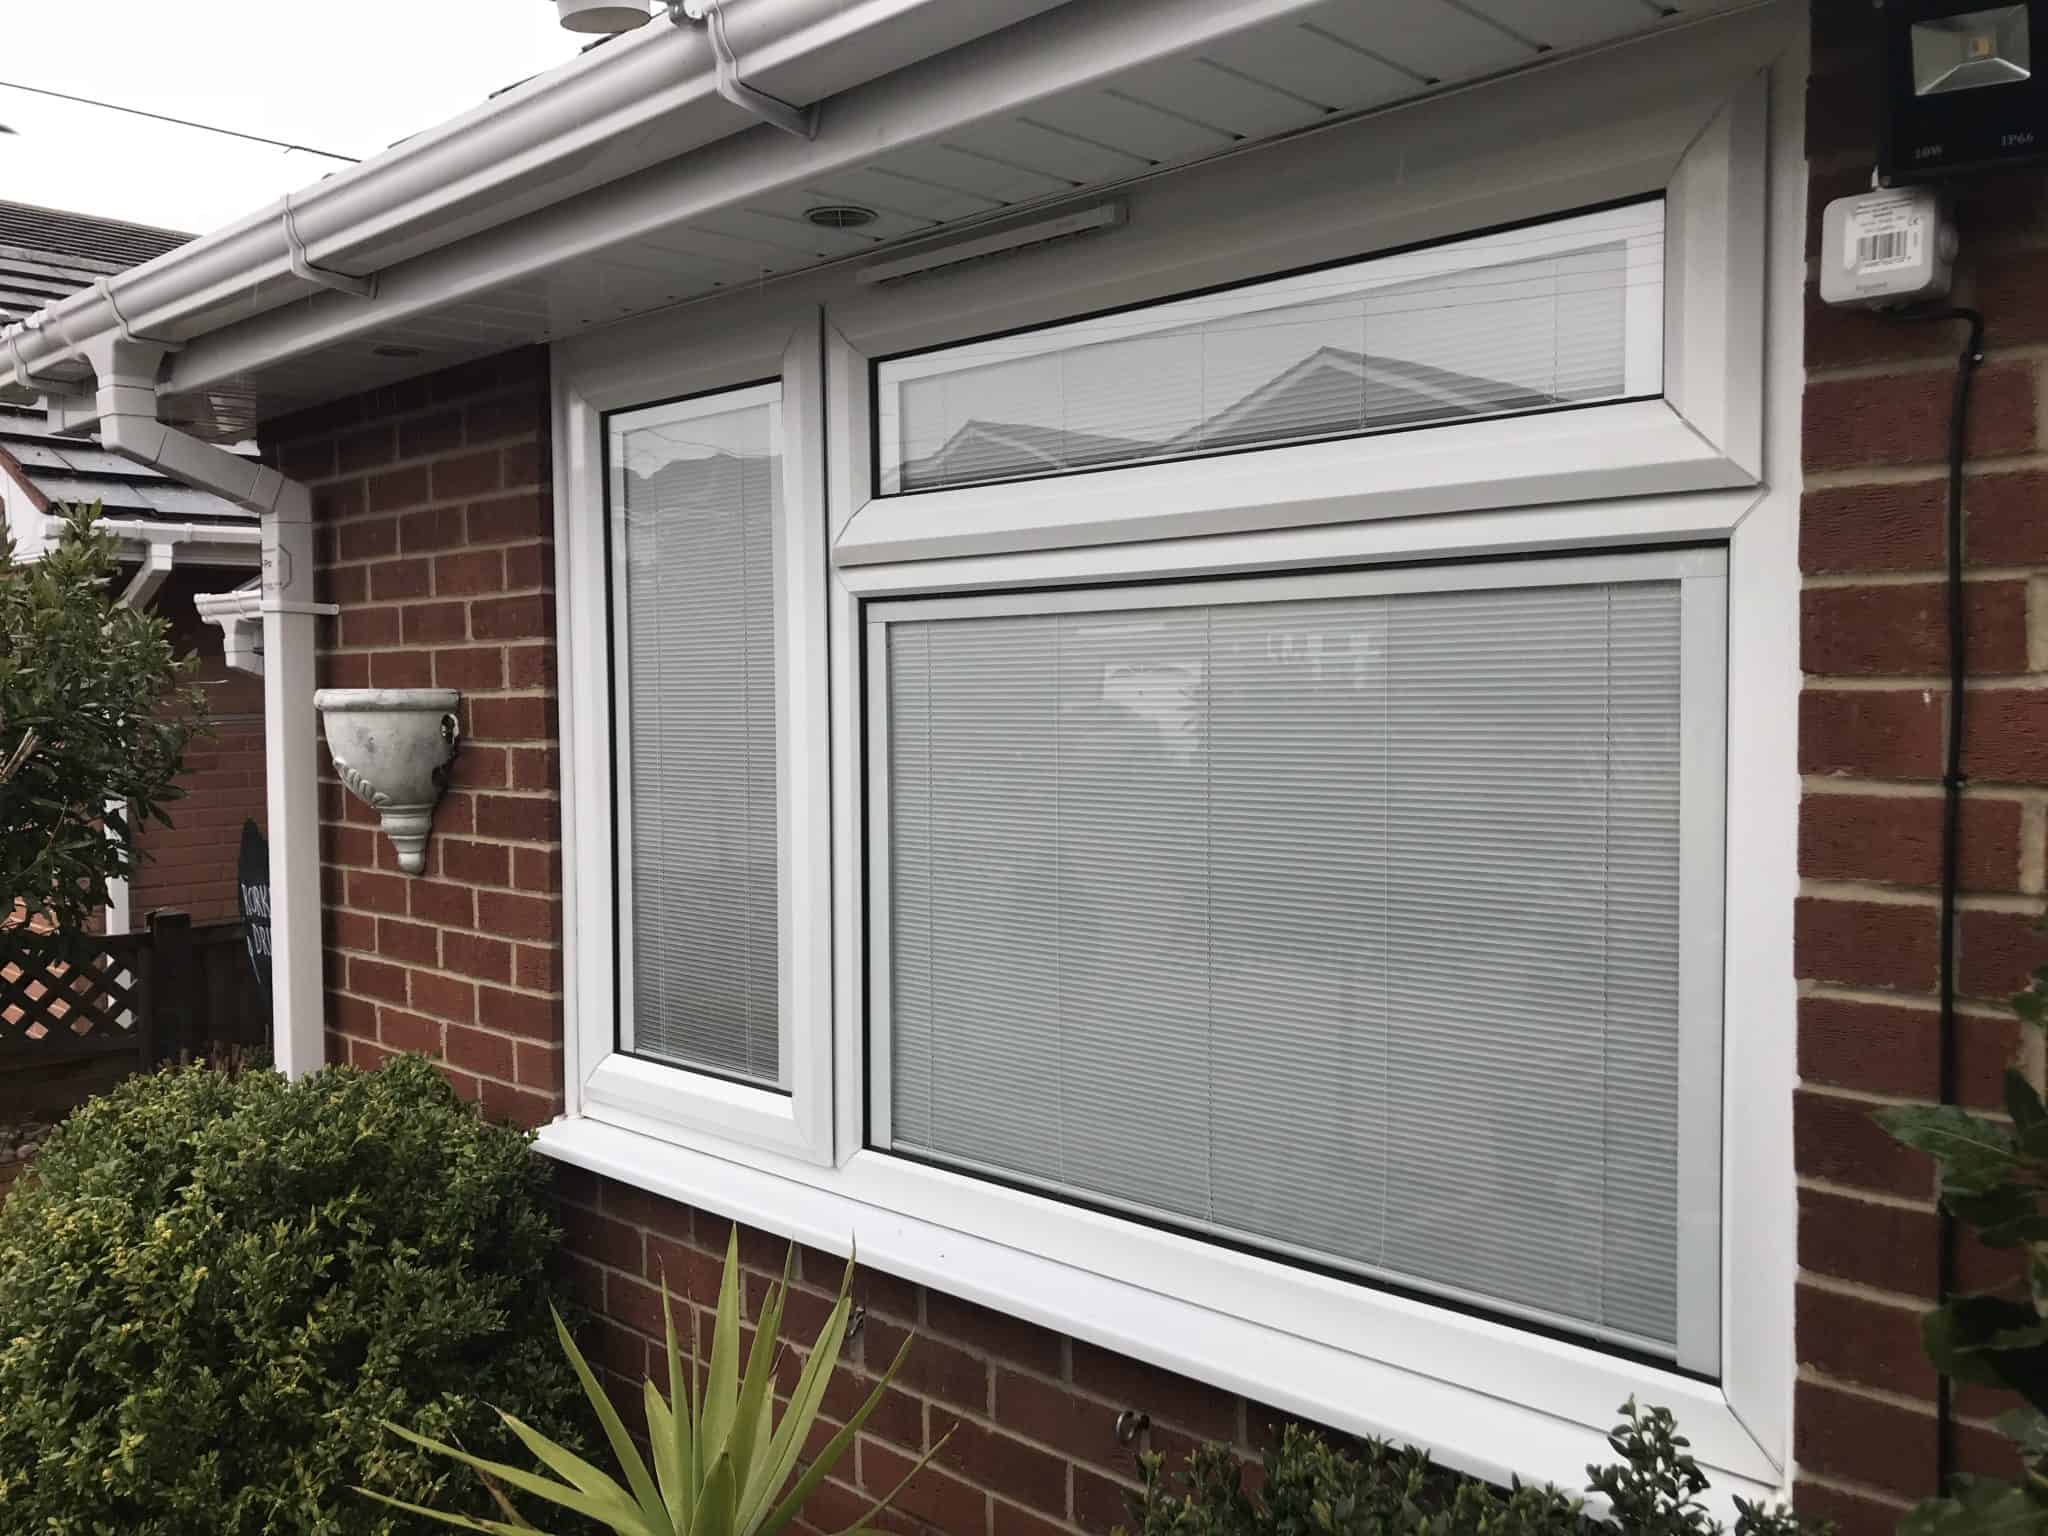 integral-blinds-for-windows